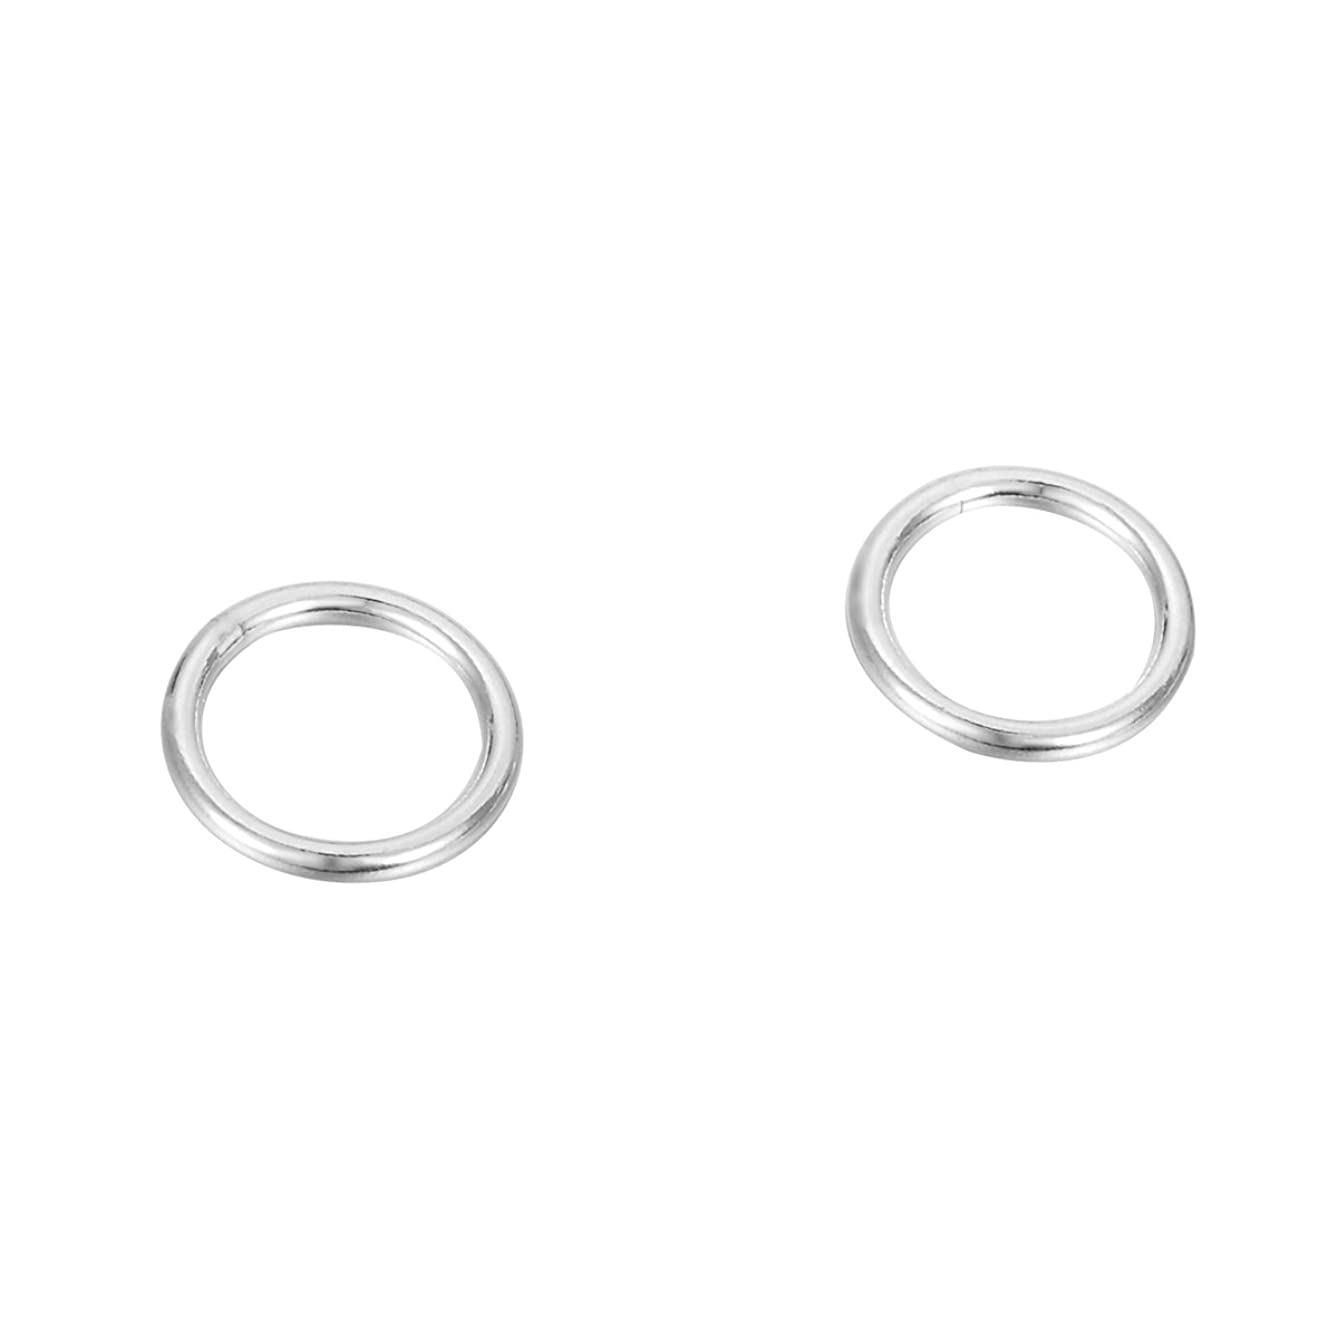 HooAMI 925 Sterling Silver Closed Jump Rings 8mm Pack of 10pcs